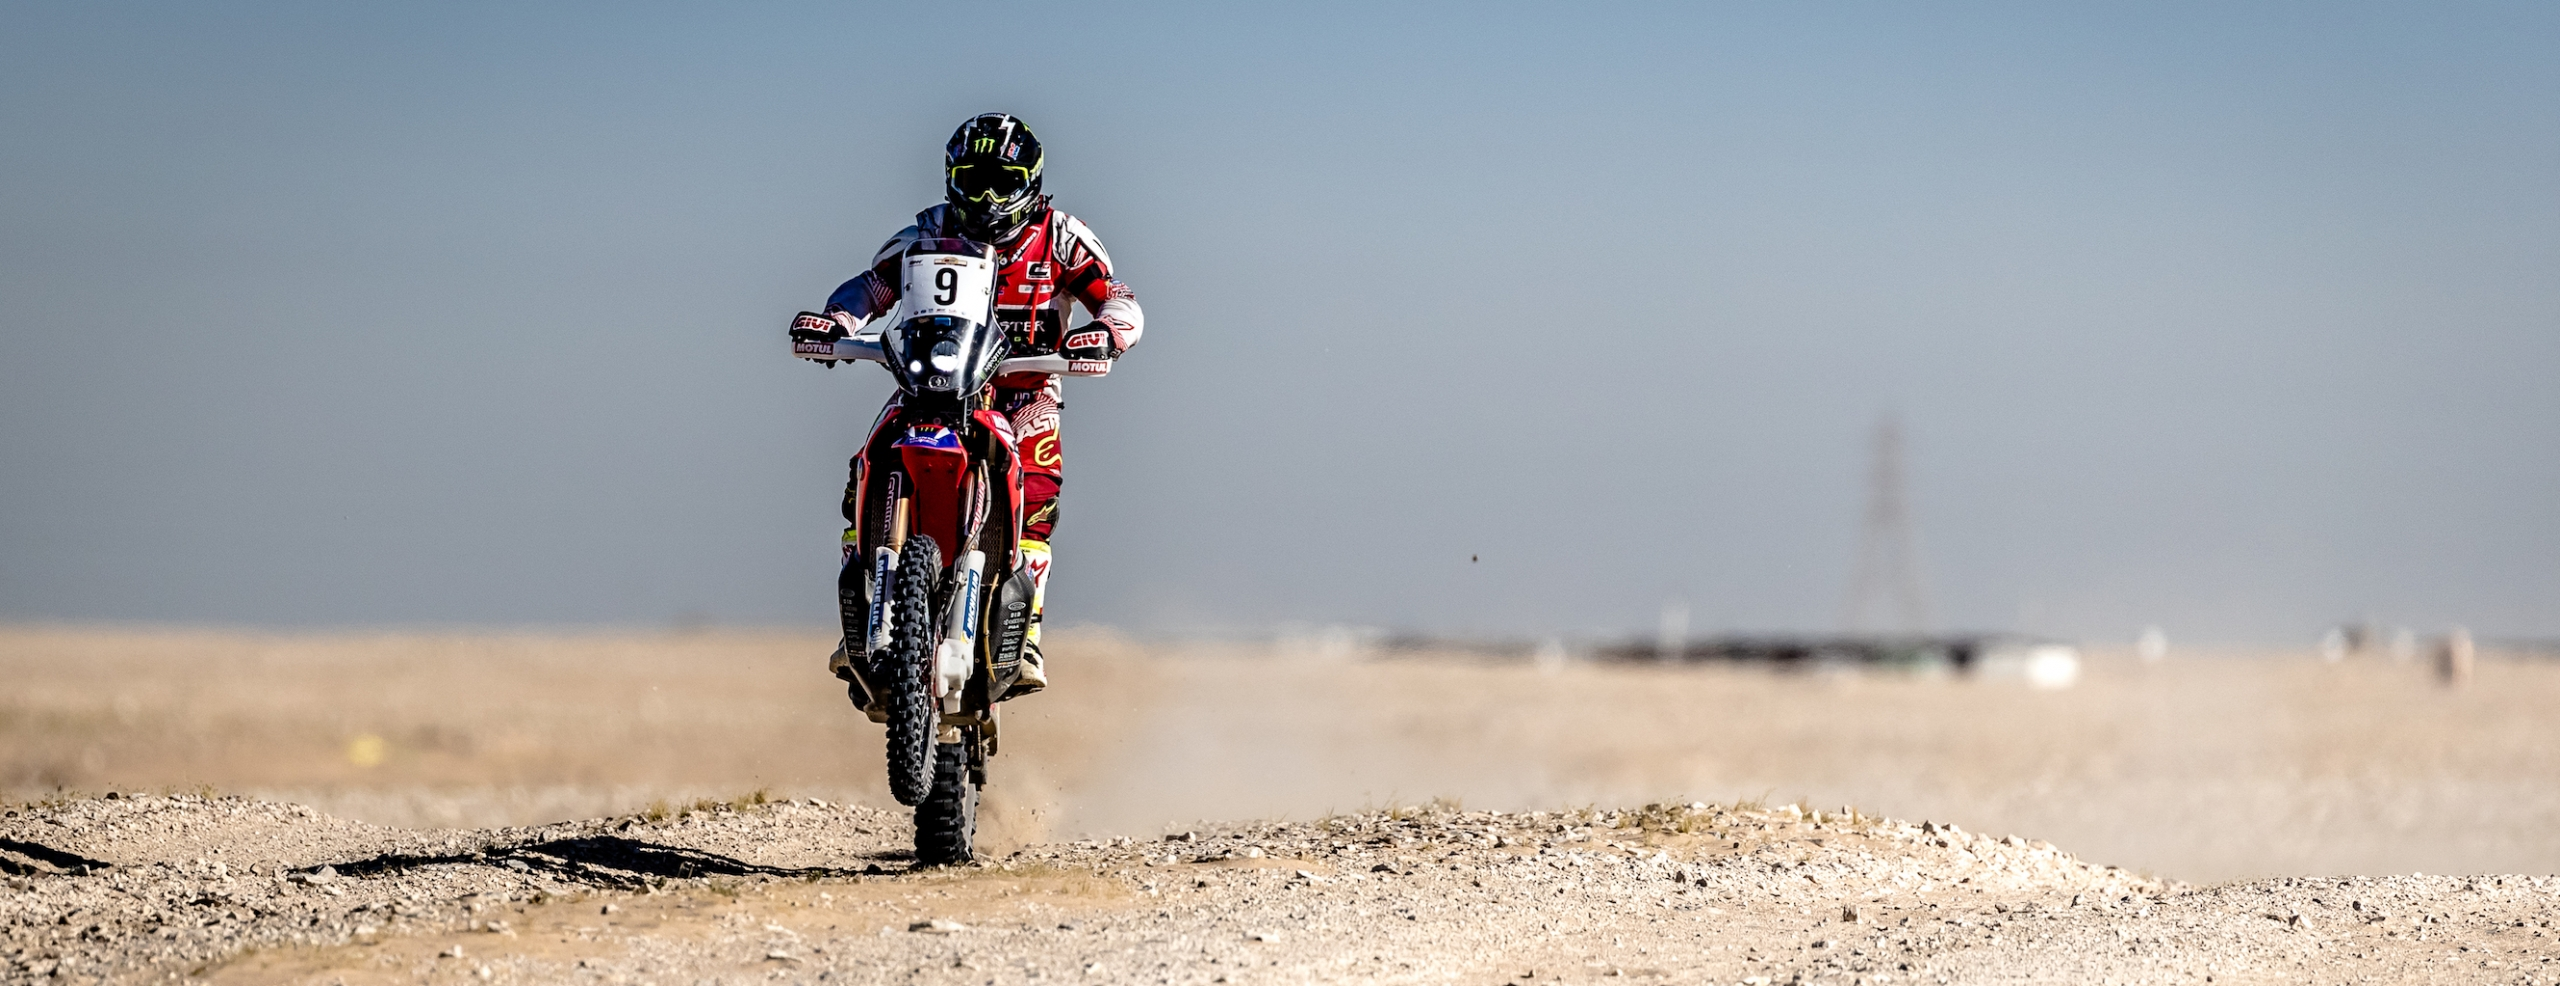 Monster Energy Honda Team finishes second in the Qatar Rally